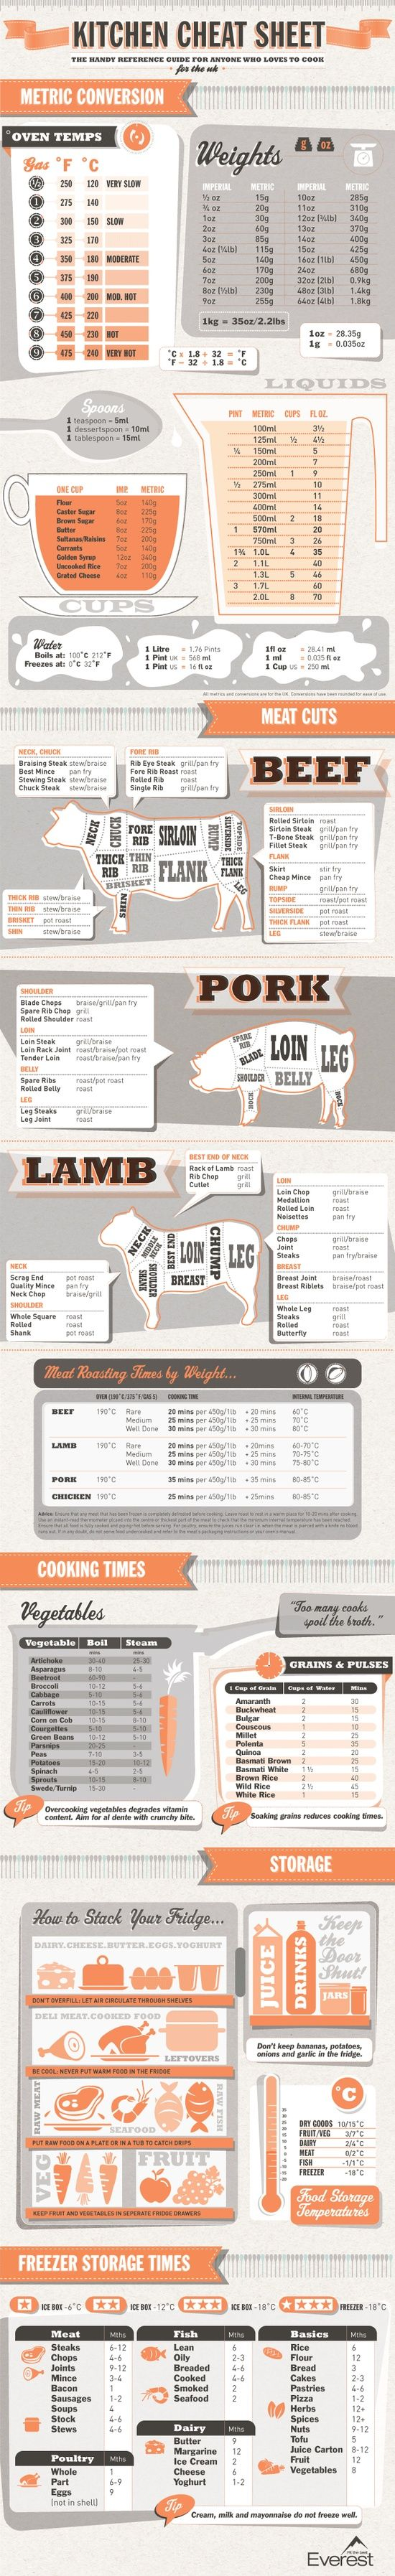 Kitchen Cheat Sheet - printing and keeping it in my kitchen!.